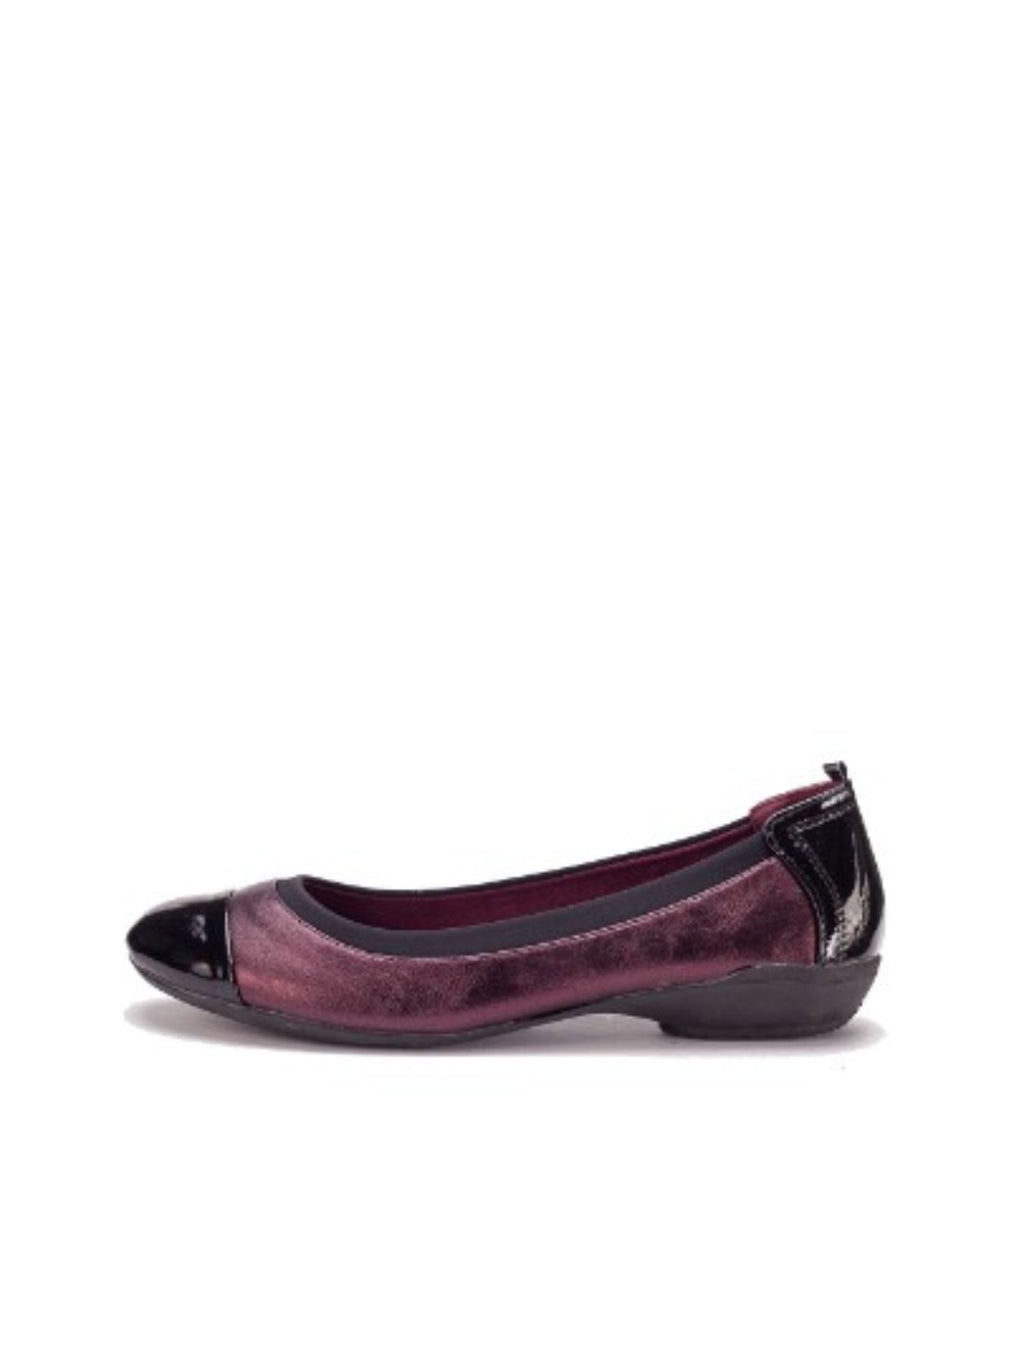 Larrie Red Joyous Casual Fashionable Flats